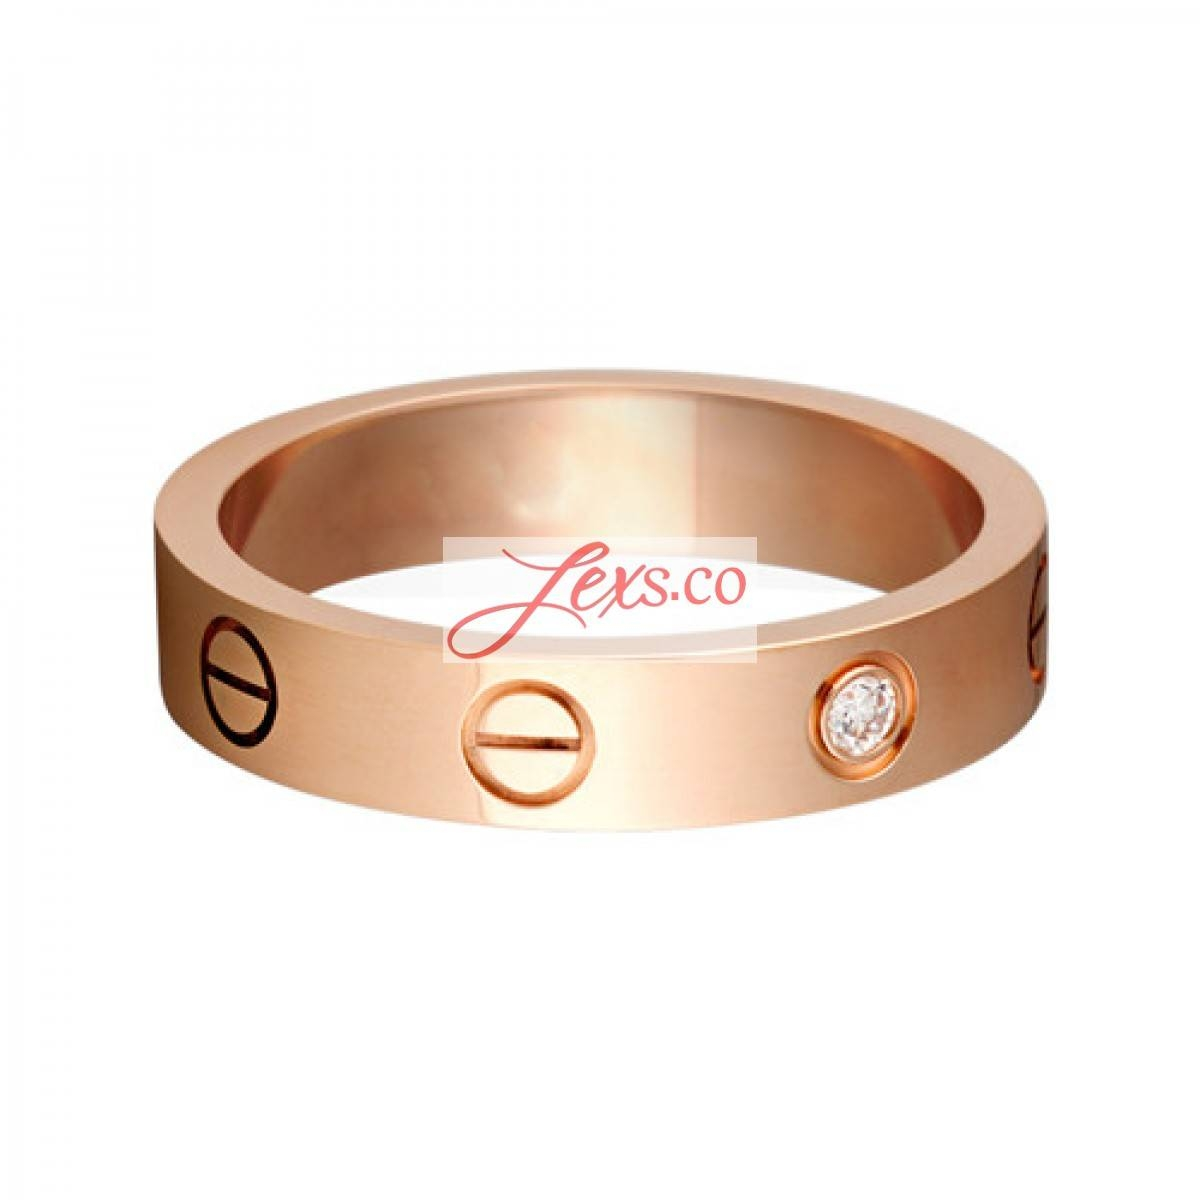 Love Wedding Band Fake 18k Pink Gold Love Ring With 1 Diamond Copy With Cartier Wedding Bands (View 4 of 15)